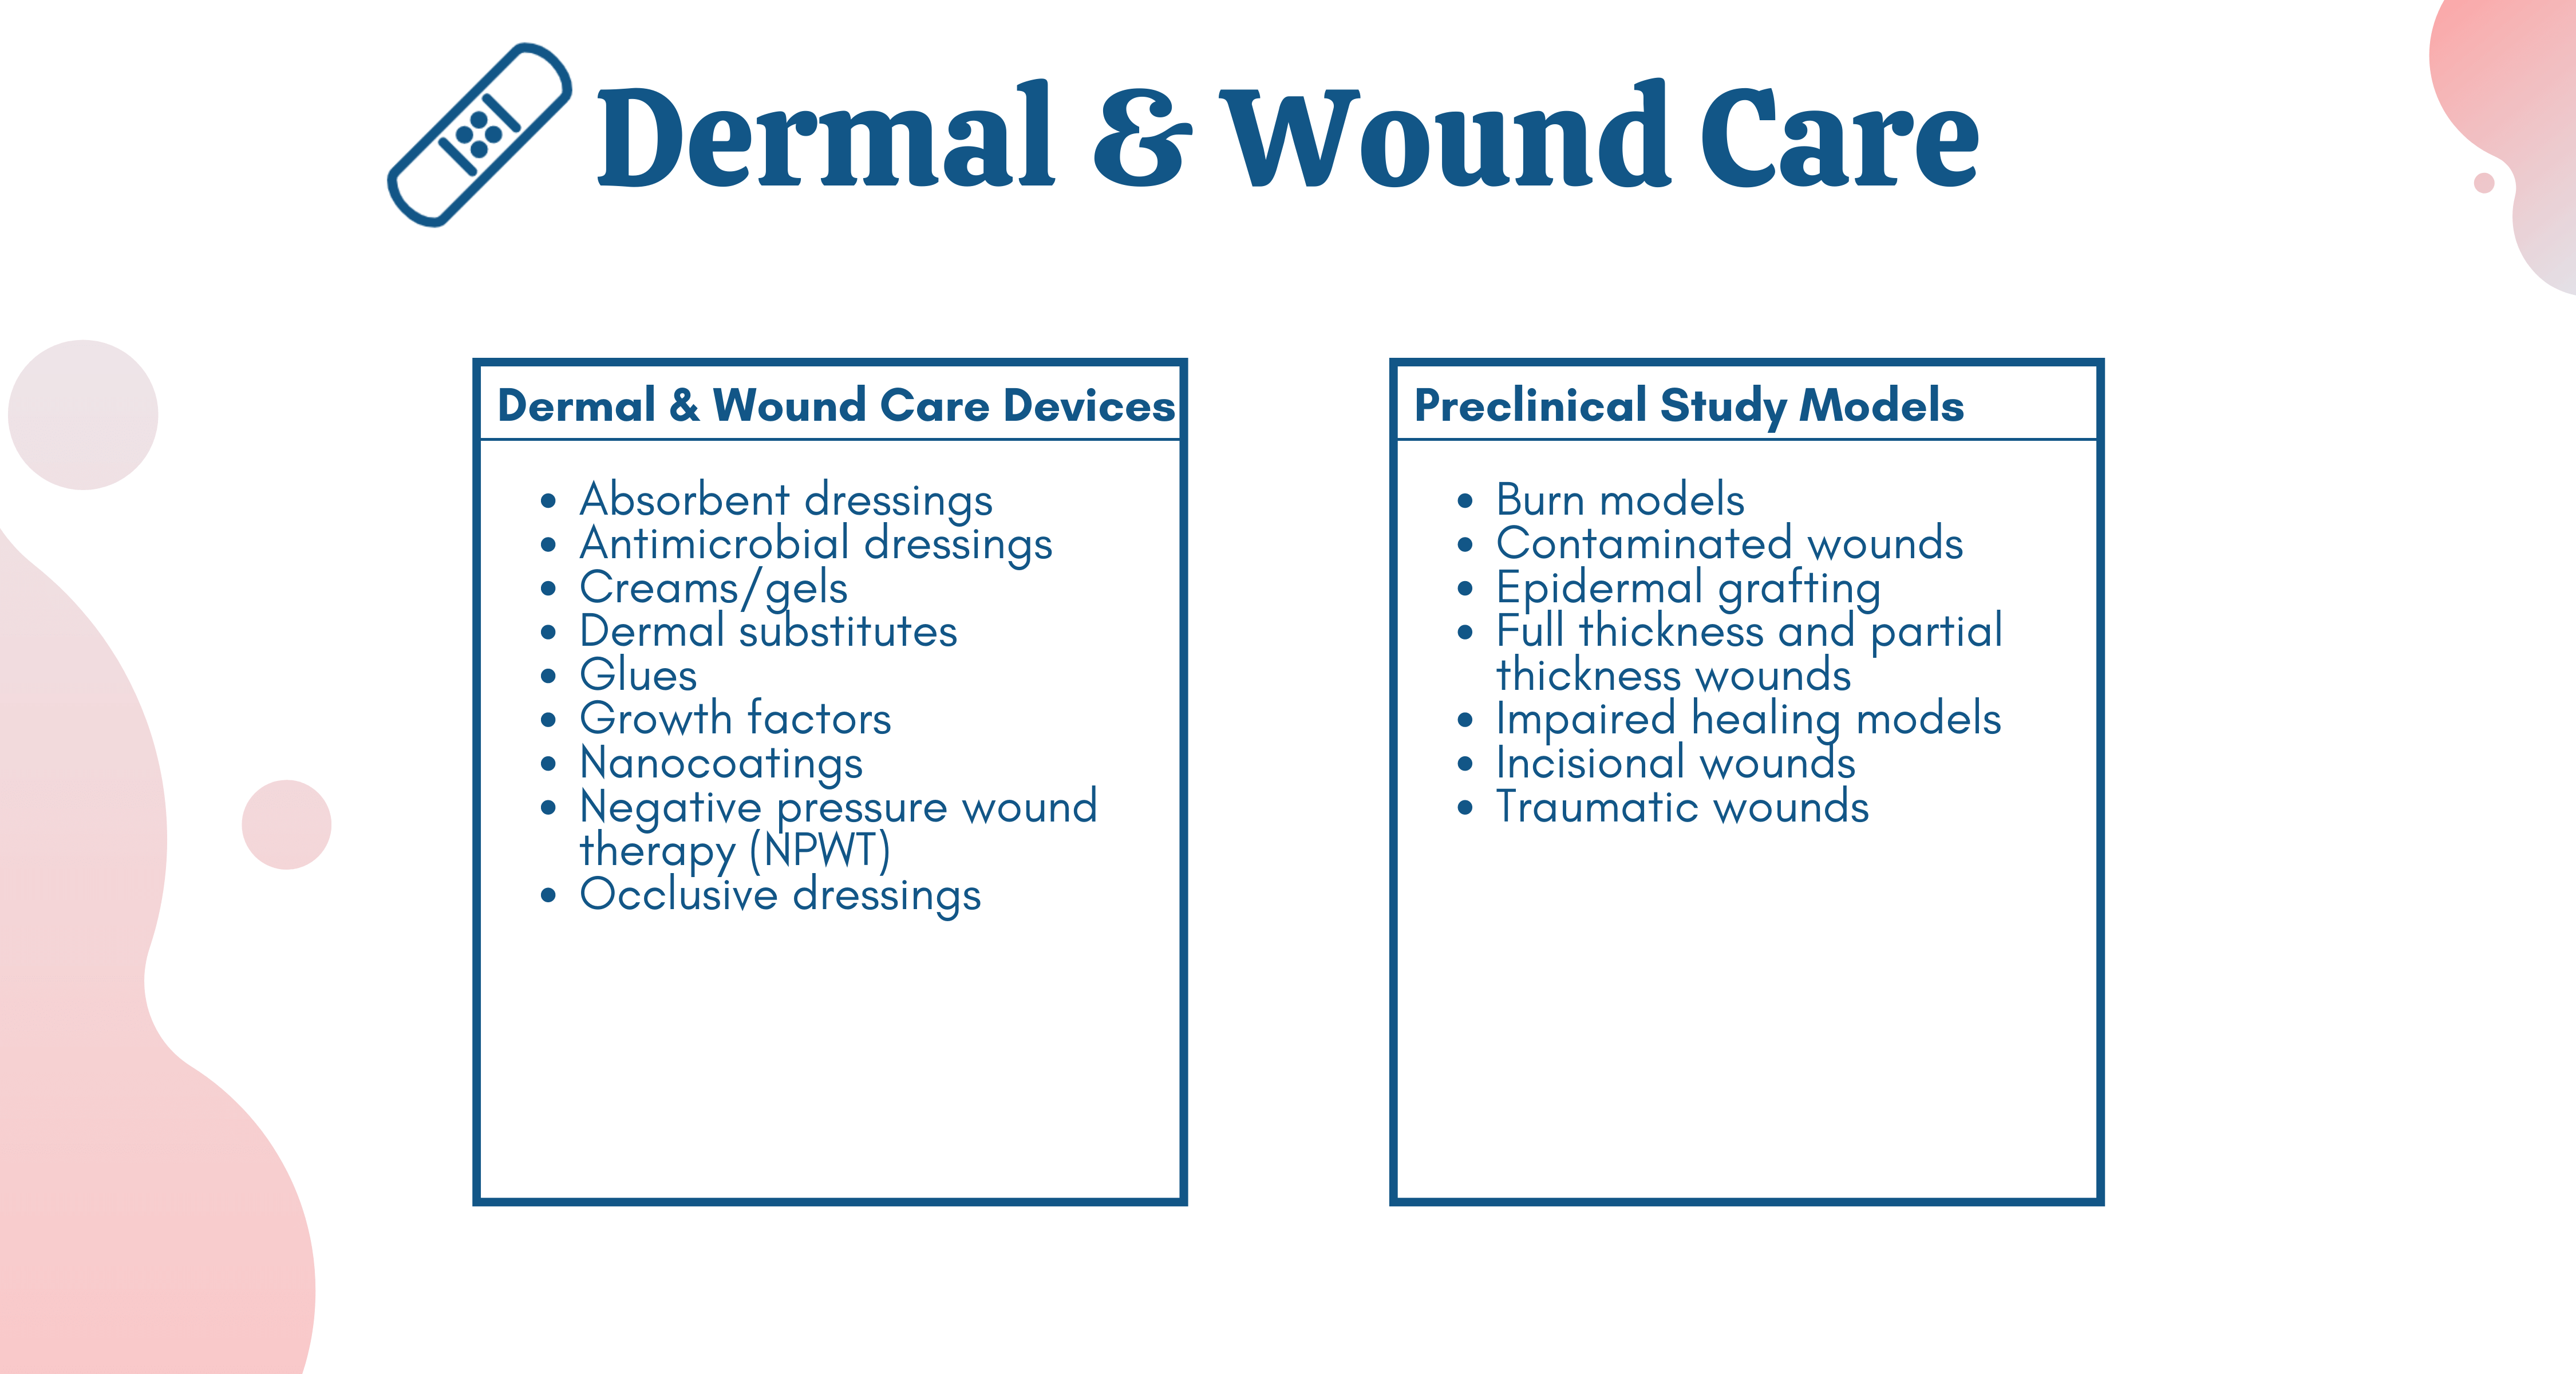 NAMSA - Leading Dermal and Wound Care CRO